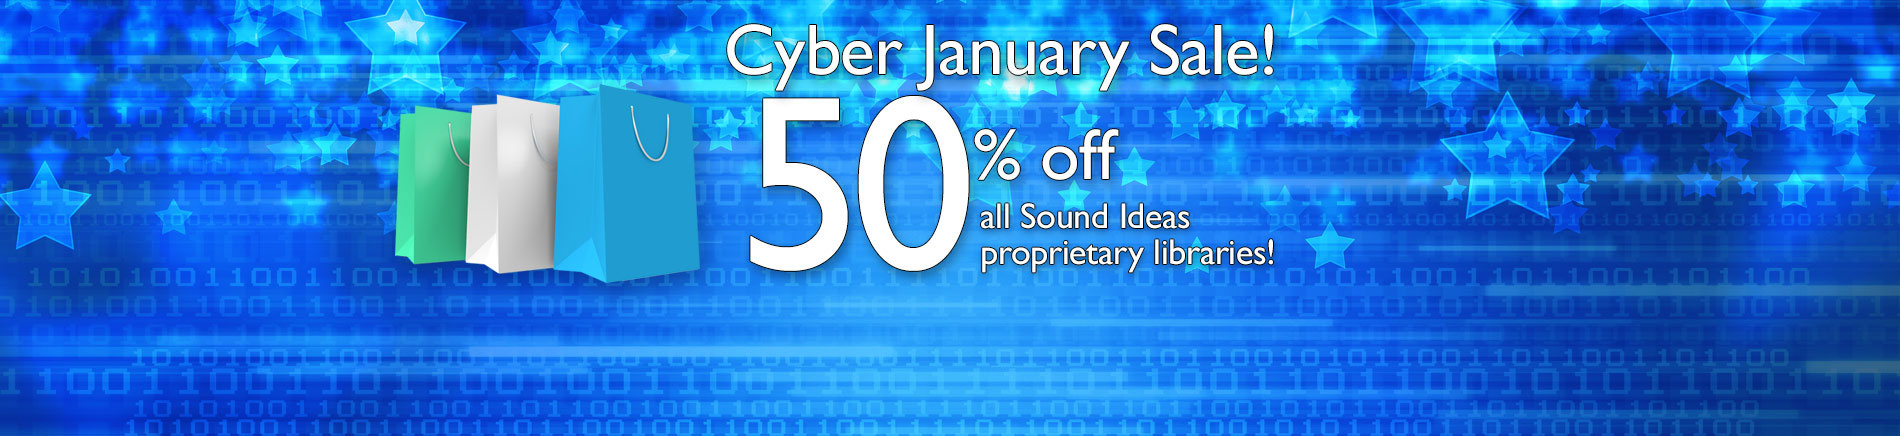 Cyber January Sale! Get 50% off ALL Sound Ideas Proprietary Products! Don't Miss Out!